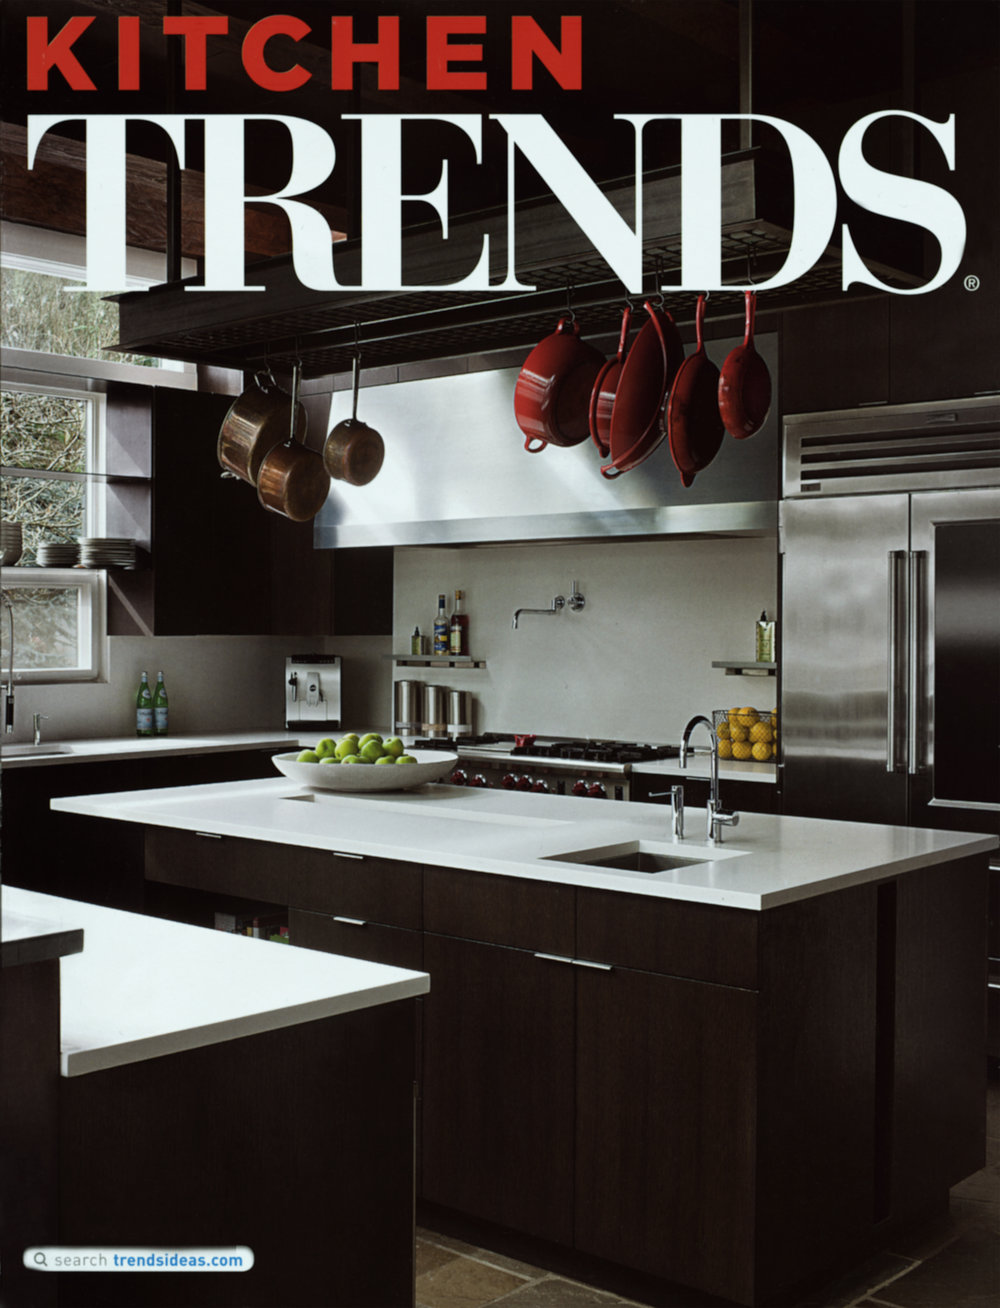 Kitchen Trends Vol. 28 September 2012